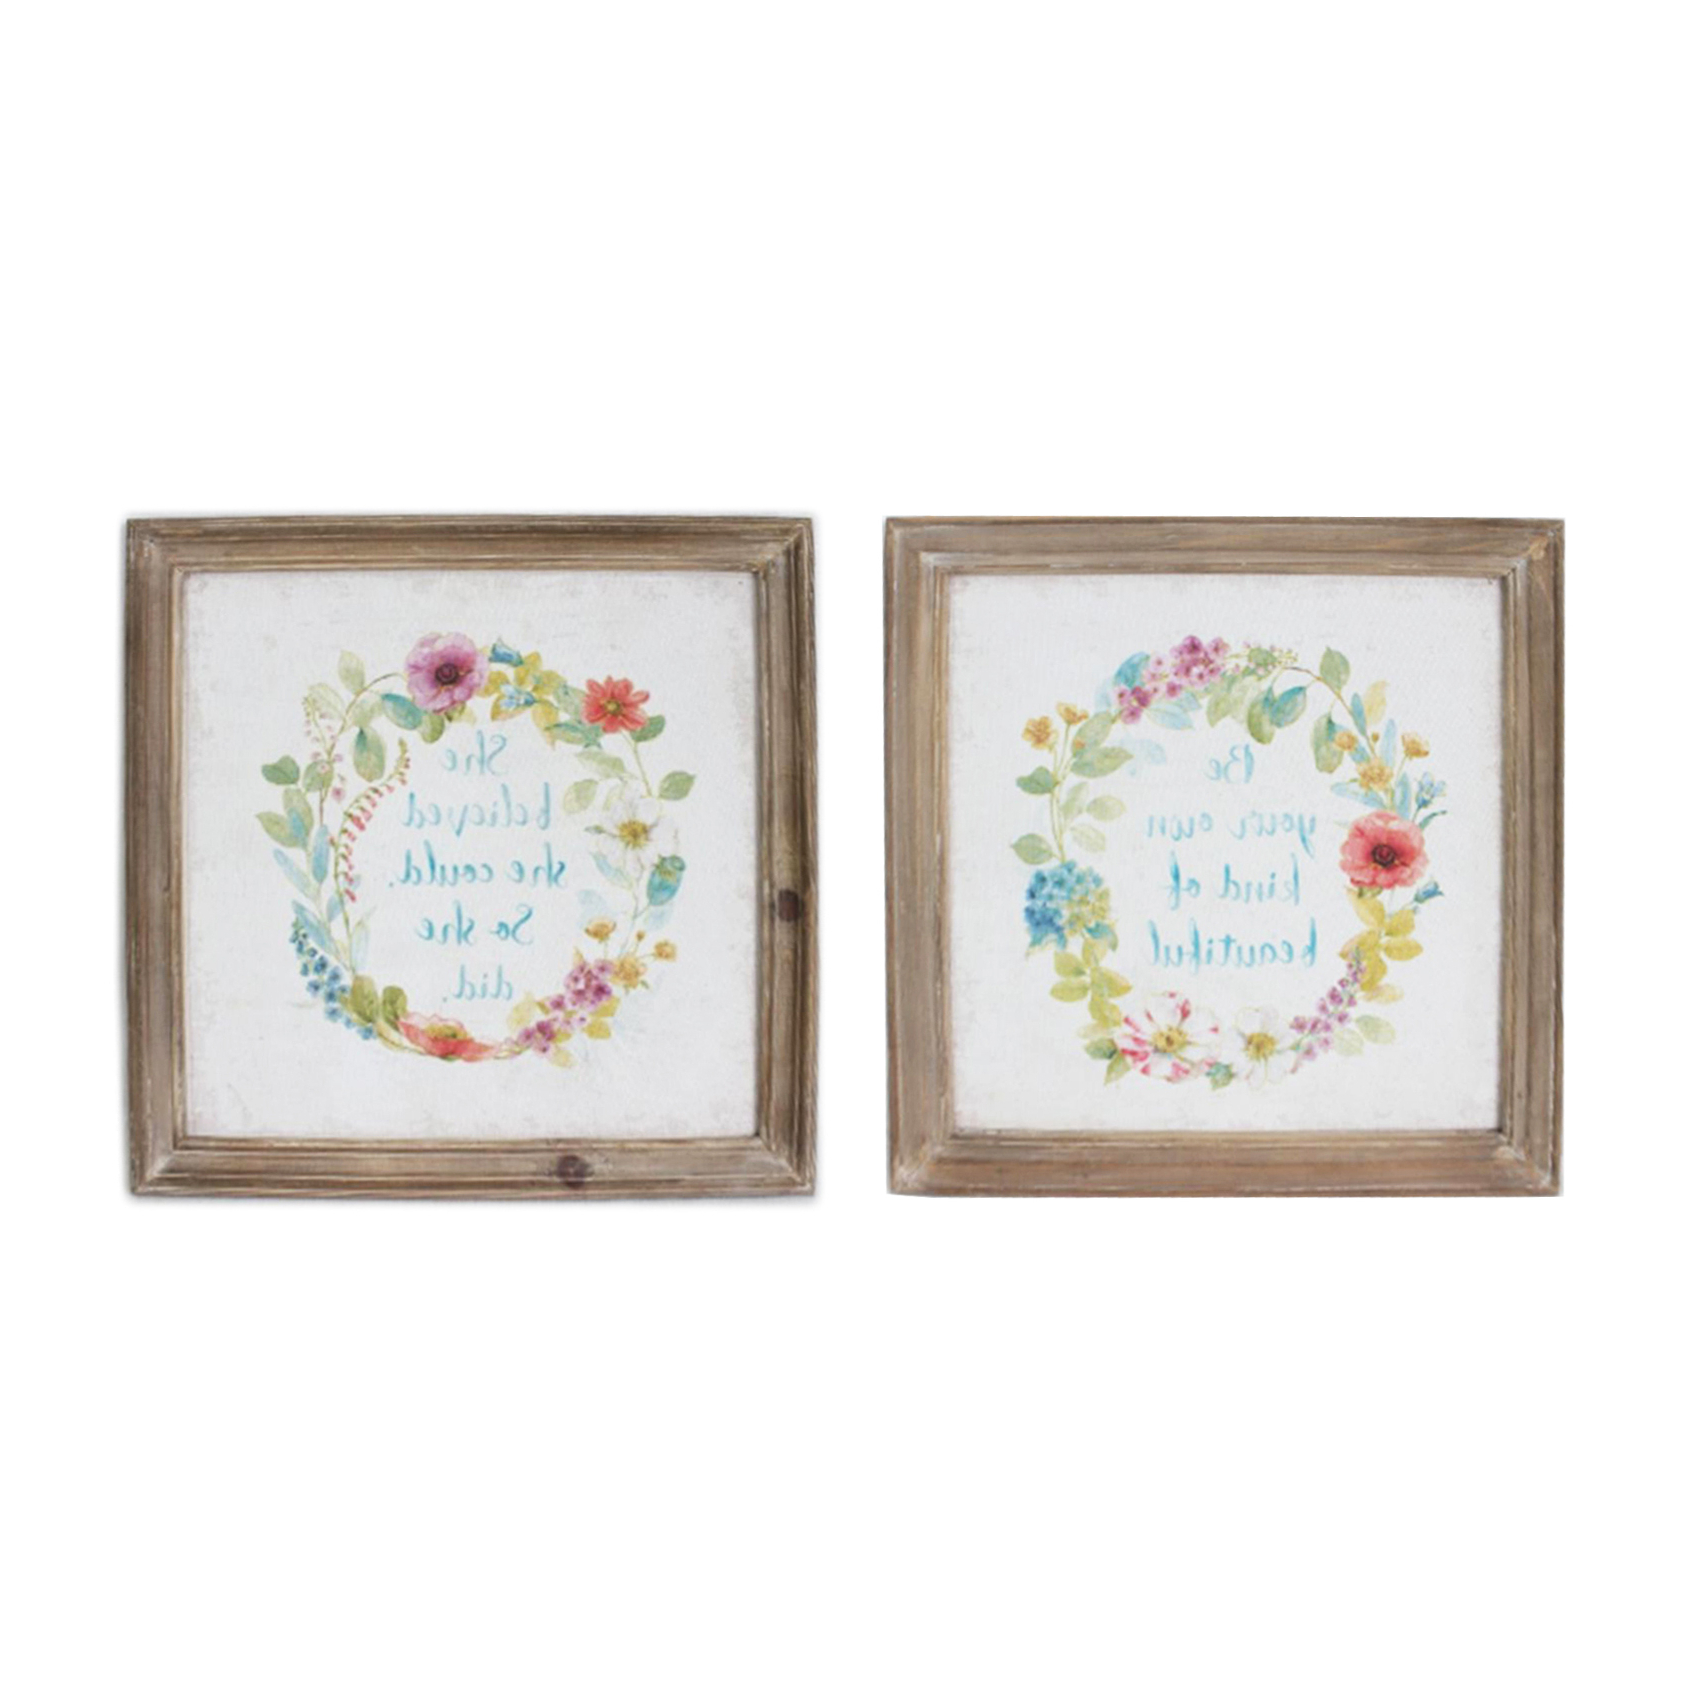 2x Shabby Chic Wooden Framed Floral Wreath Canvas Print Picture Wall In Current Floral Wreath Wood Framed Wall Decor (View 7 of 20)